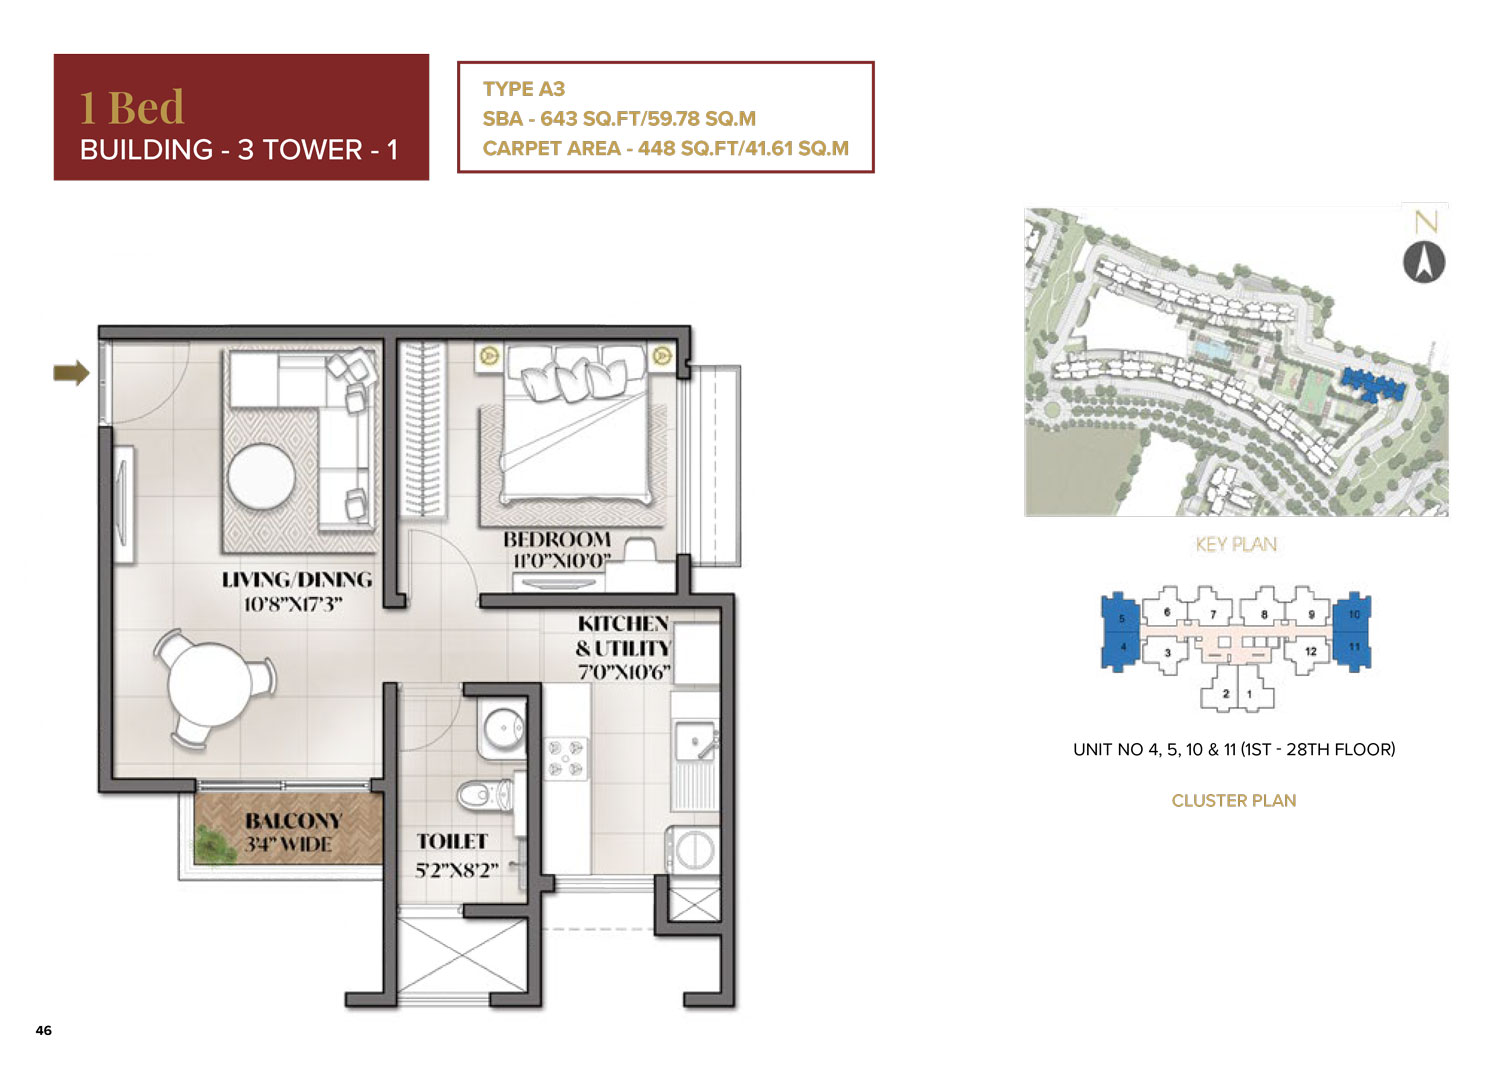 Type A3 - 643 Sq Ft